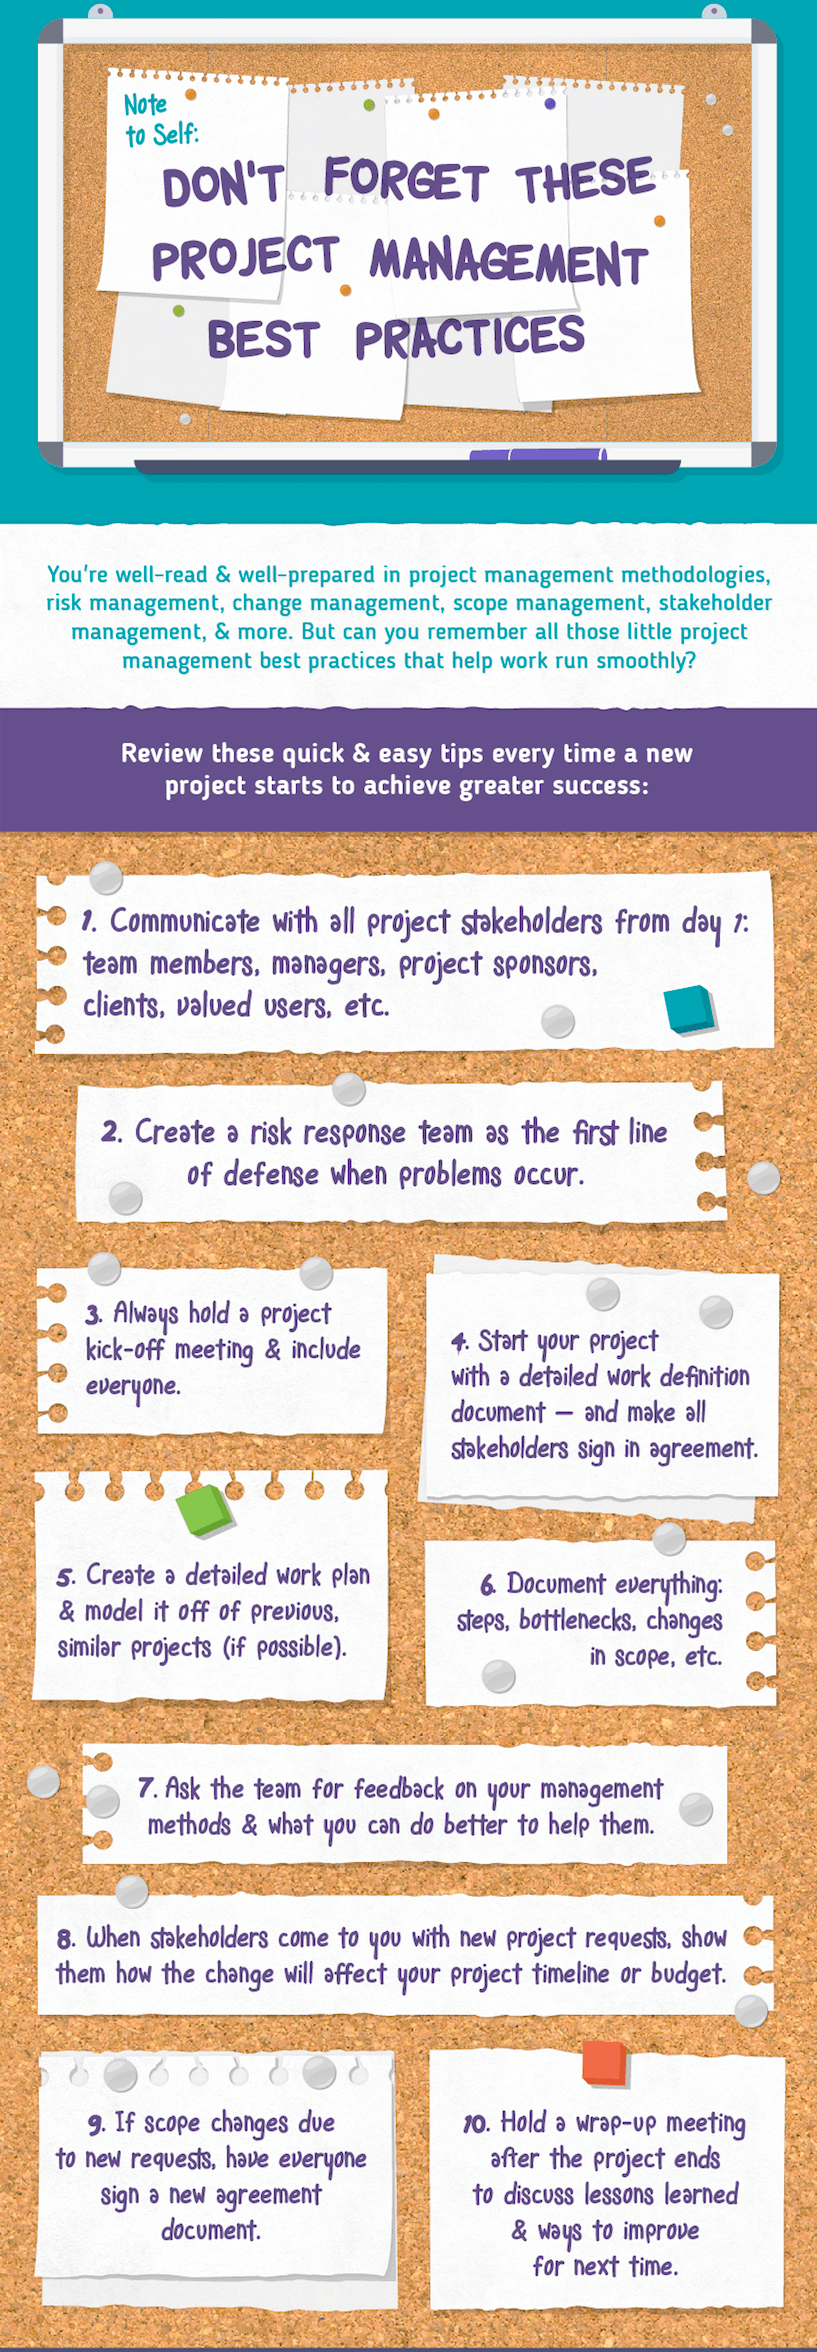 project management best practices infographic